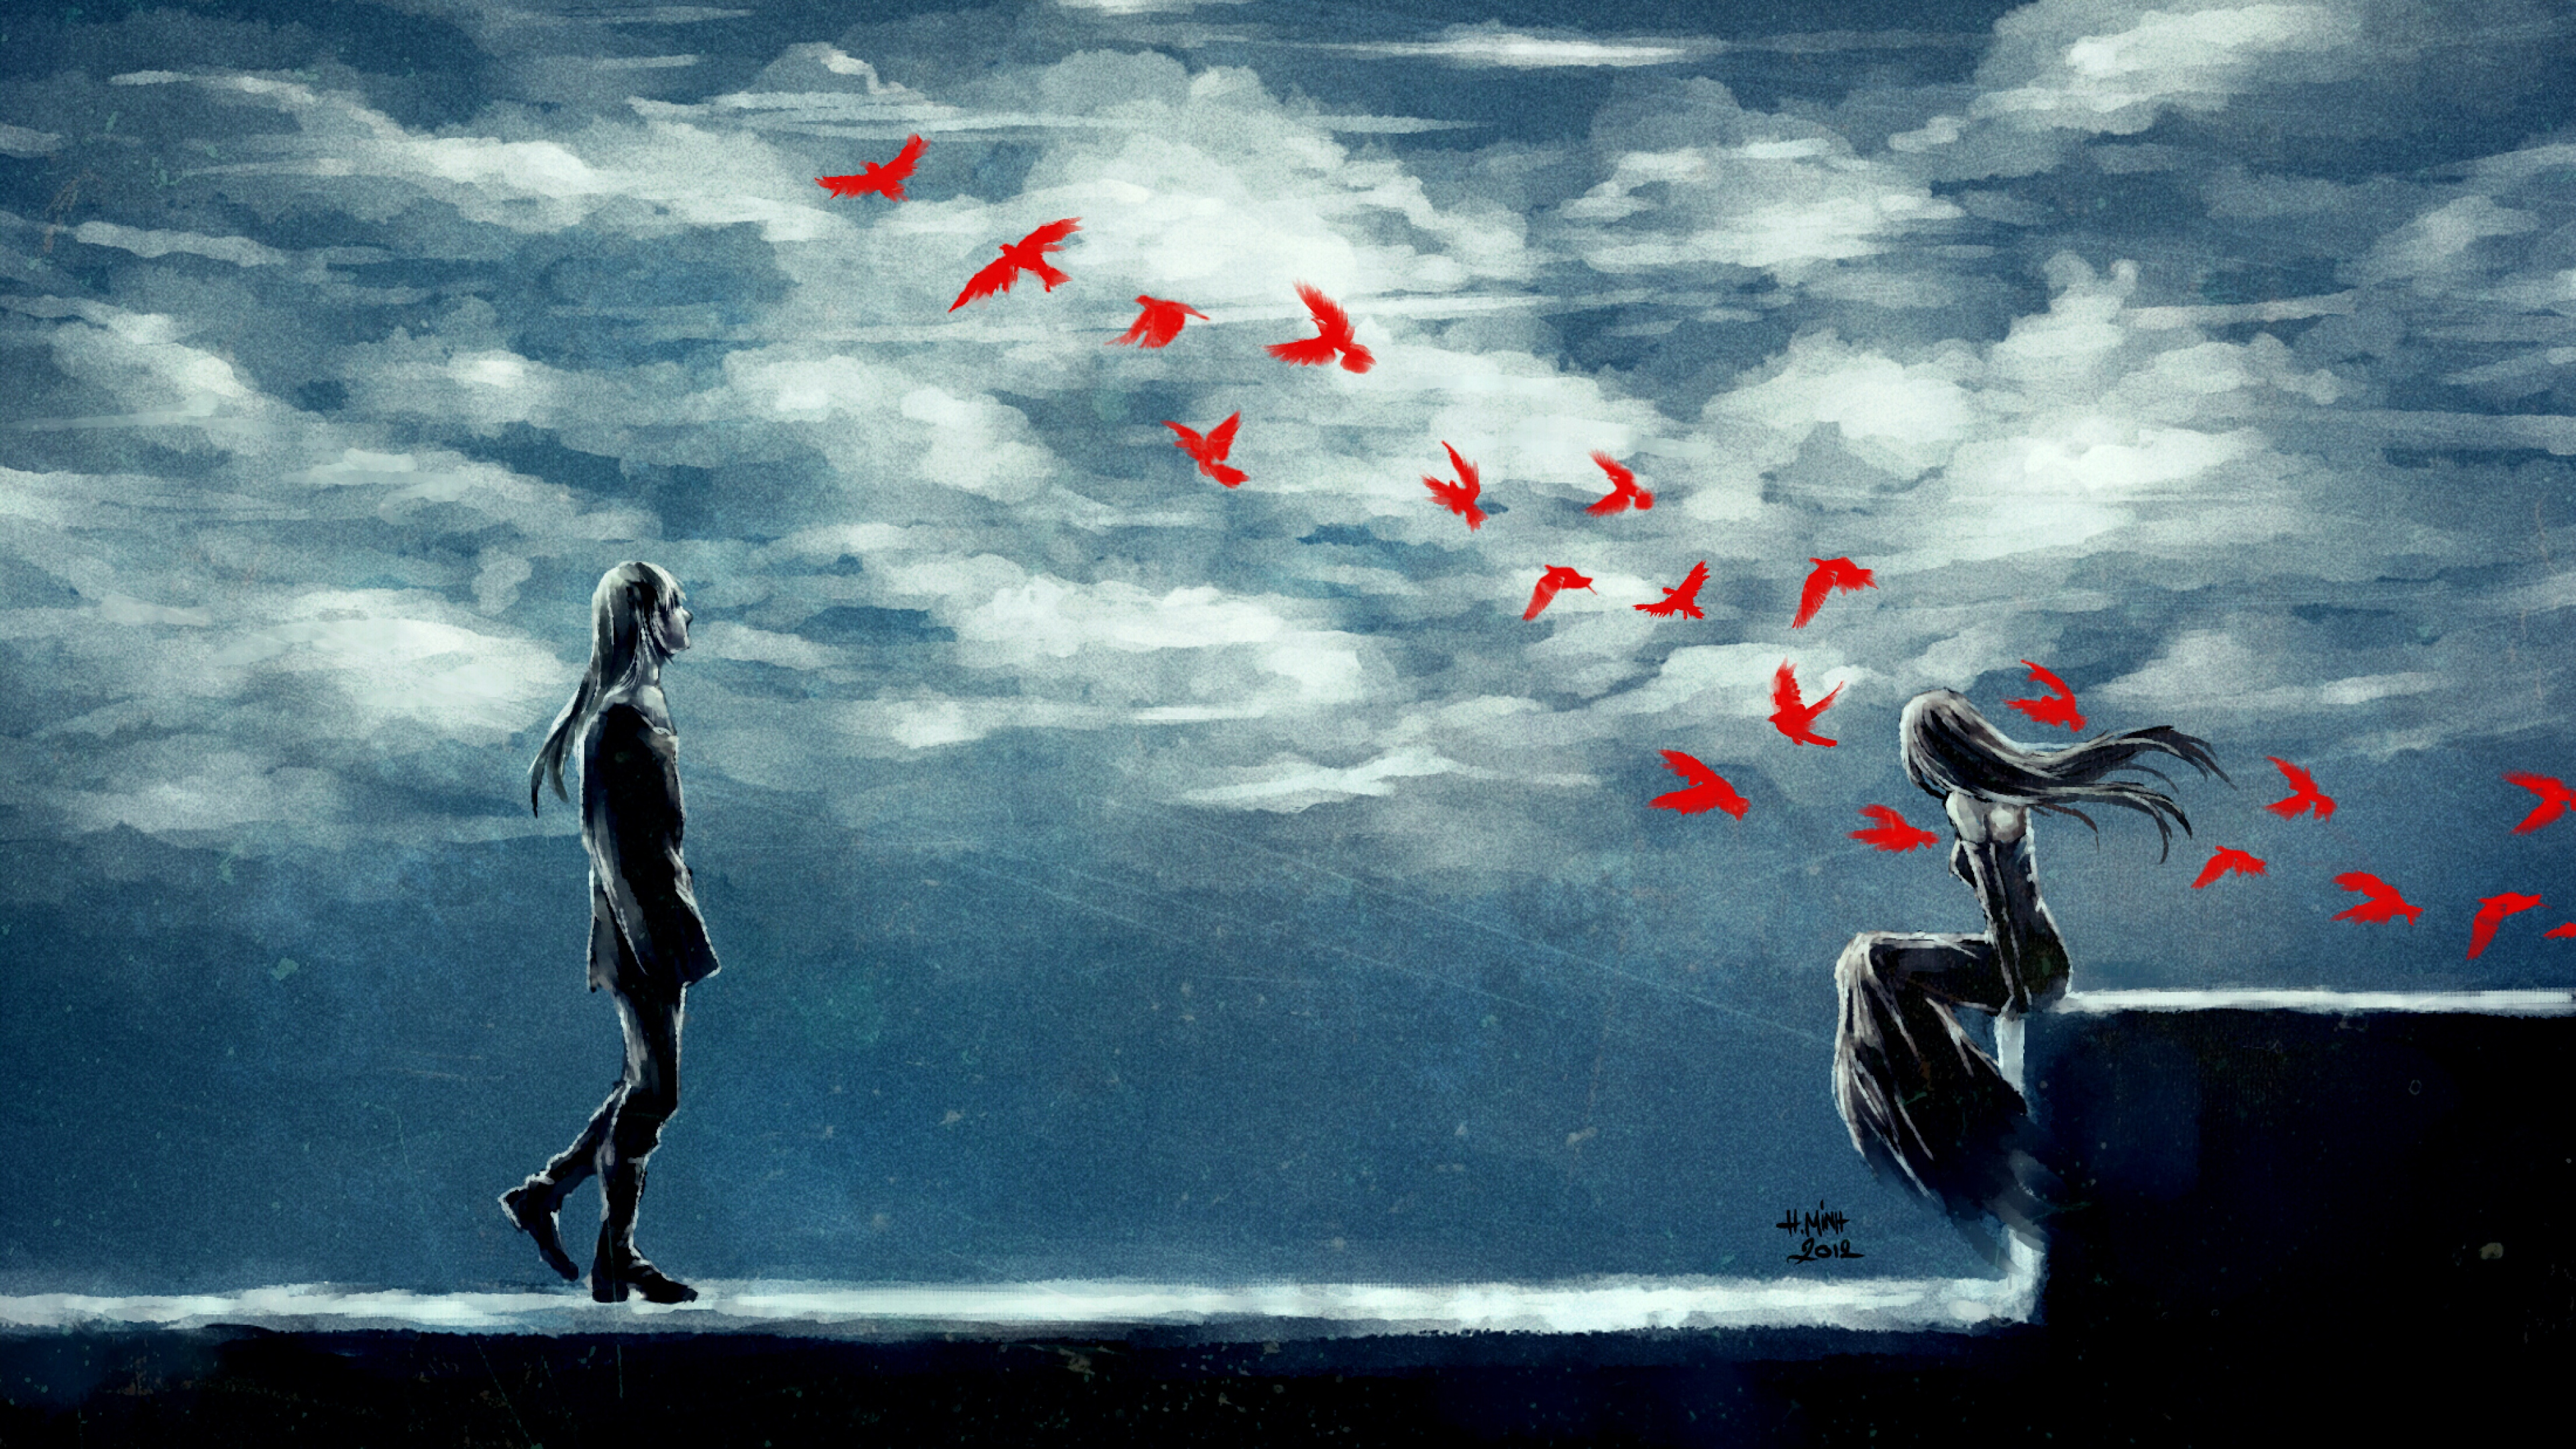 clouds anime girl and boy 1541973537 - Clouds Anime Girl and Boy - digital art wallpapers, birds wallpapers, artist wallpapers, art wallpapers, anime wallpapers, anime girl wallpapers, anime boy wallpapers, alone wallpapers